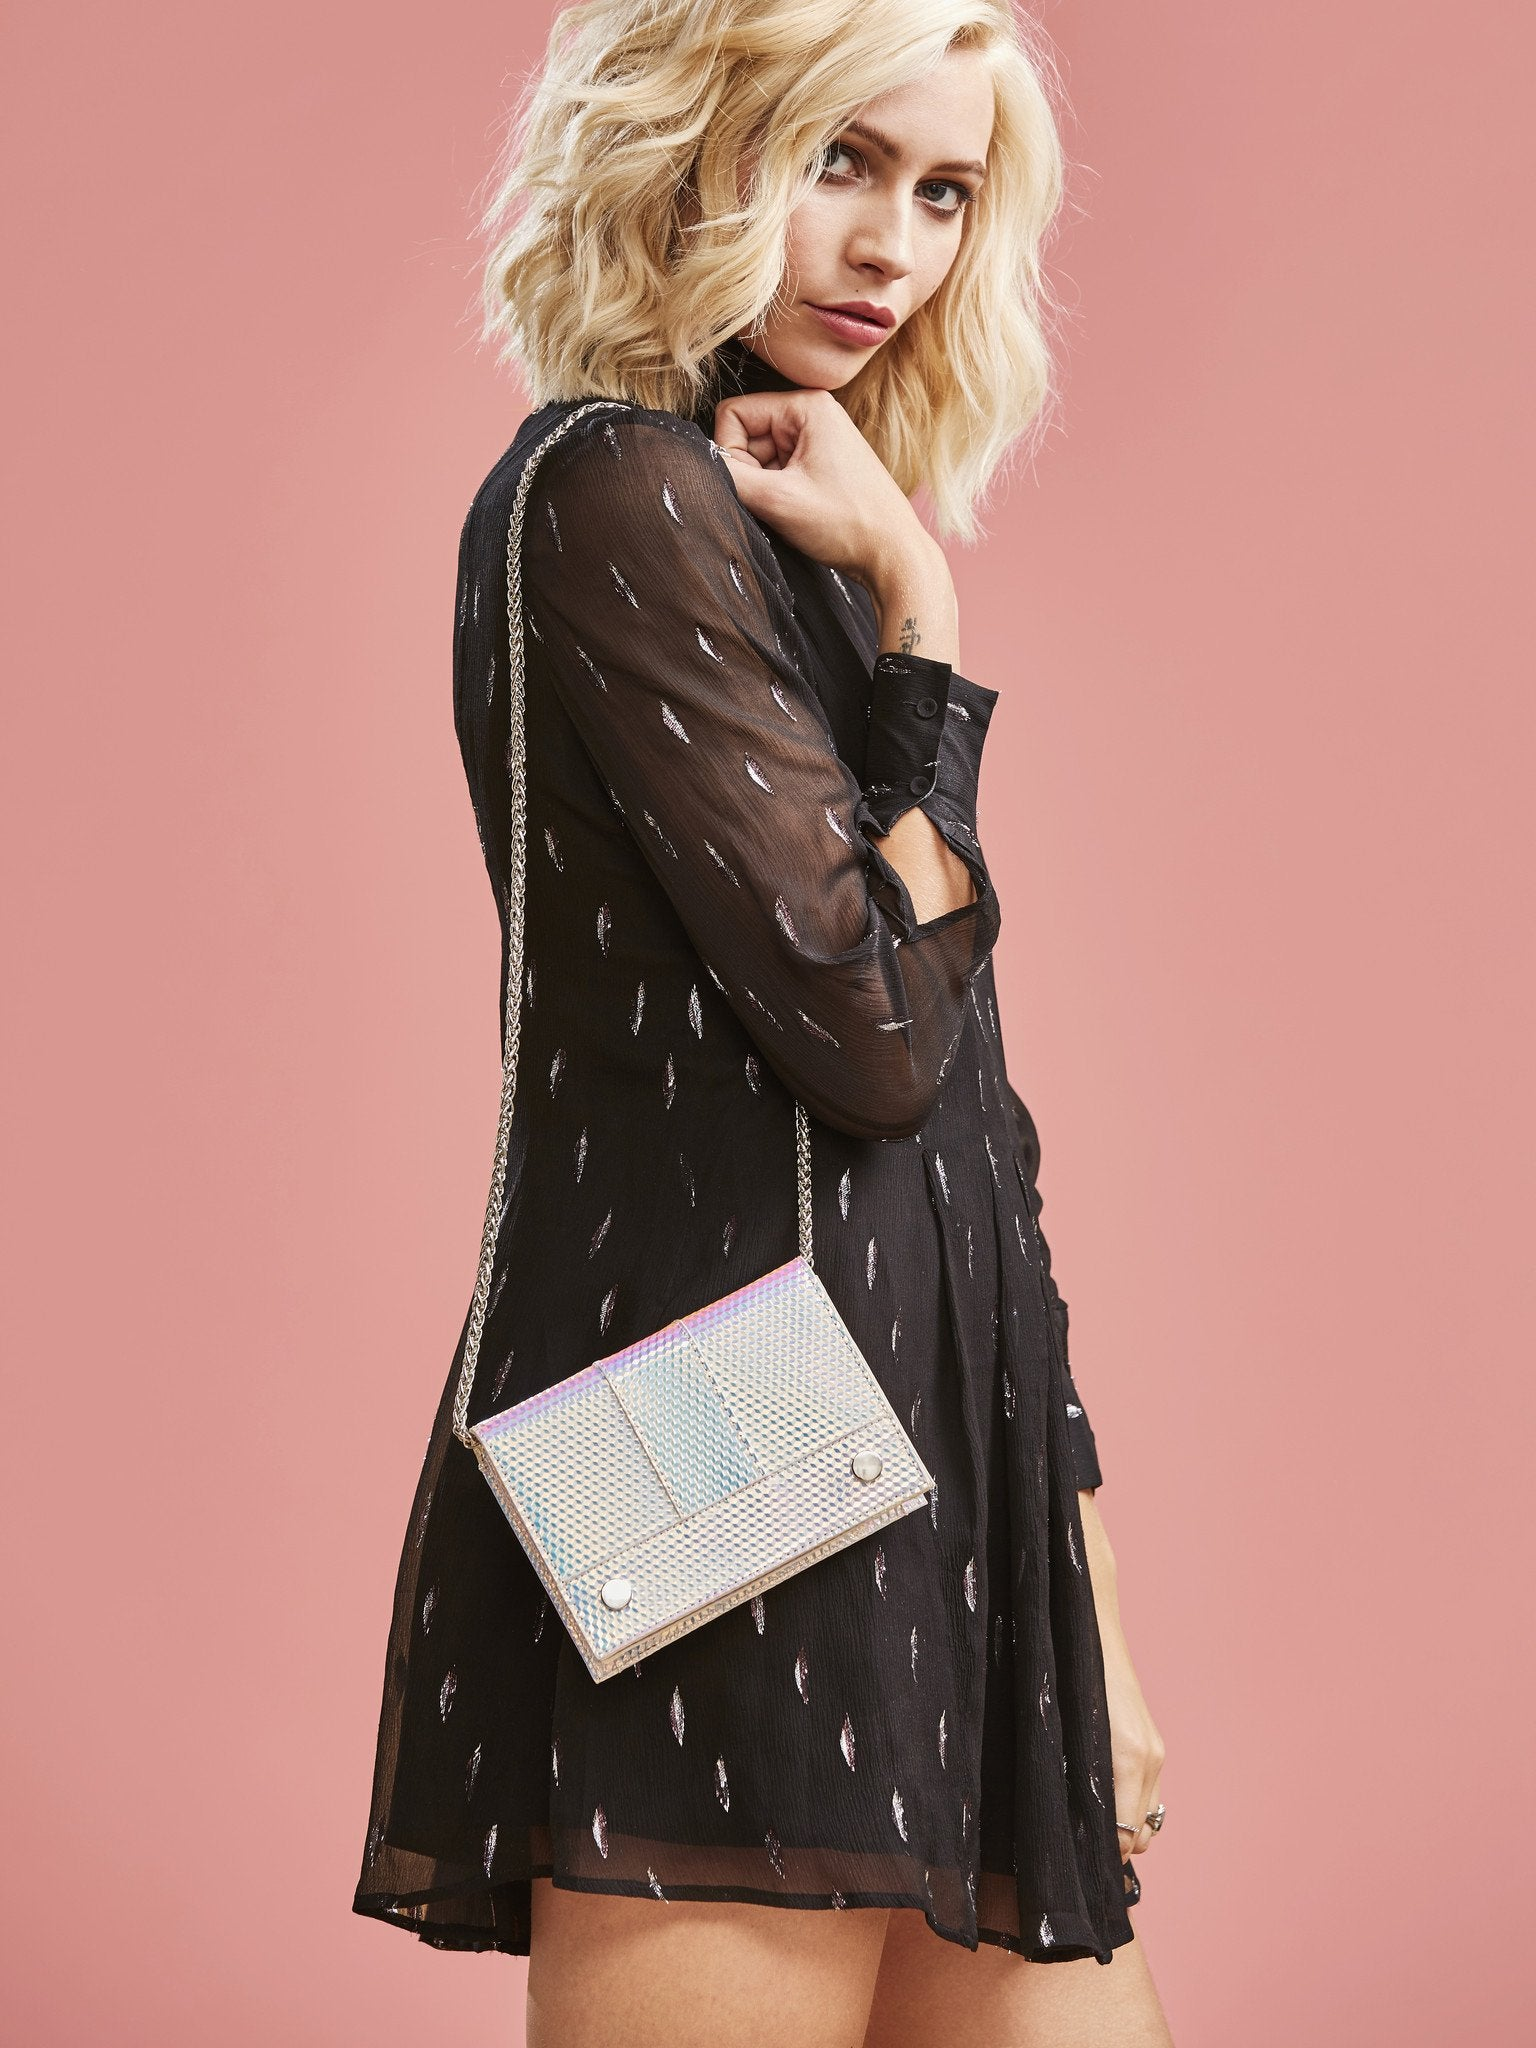 Druzy Ray Cross Body Bag